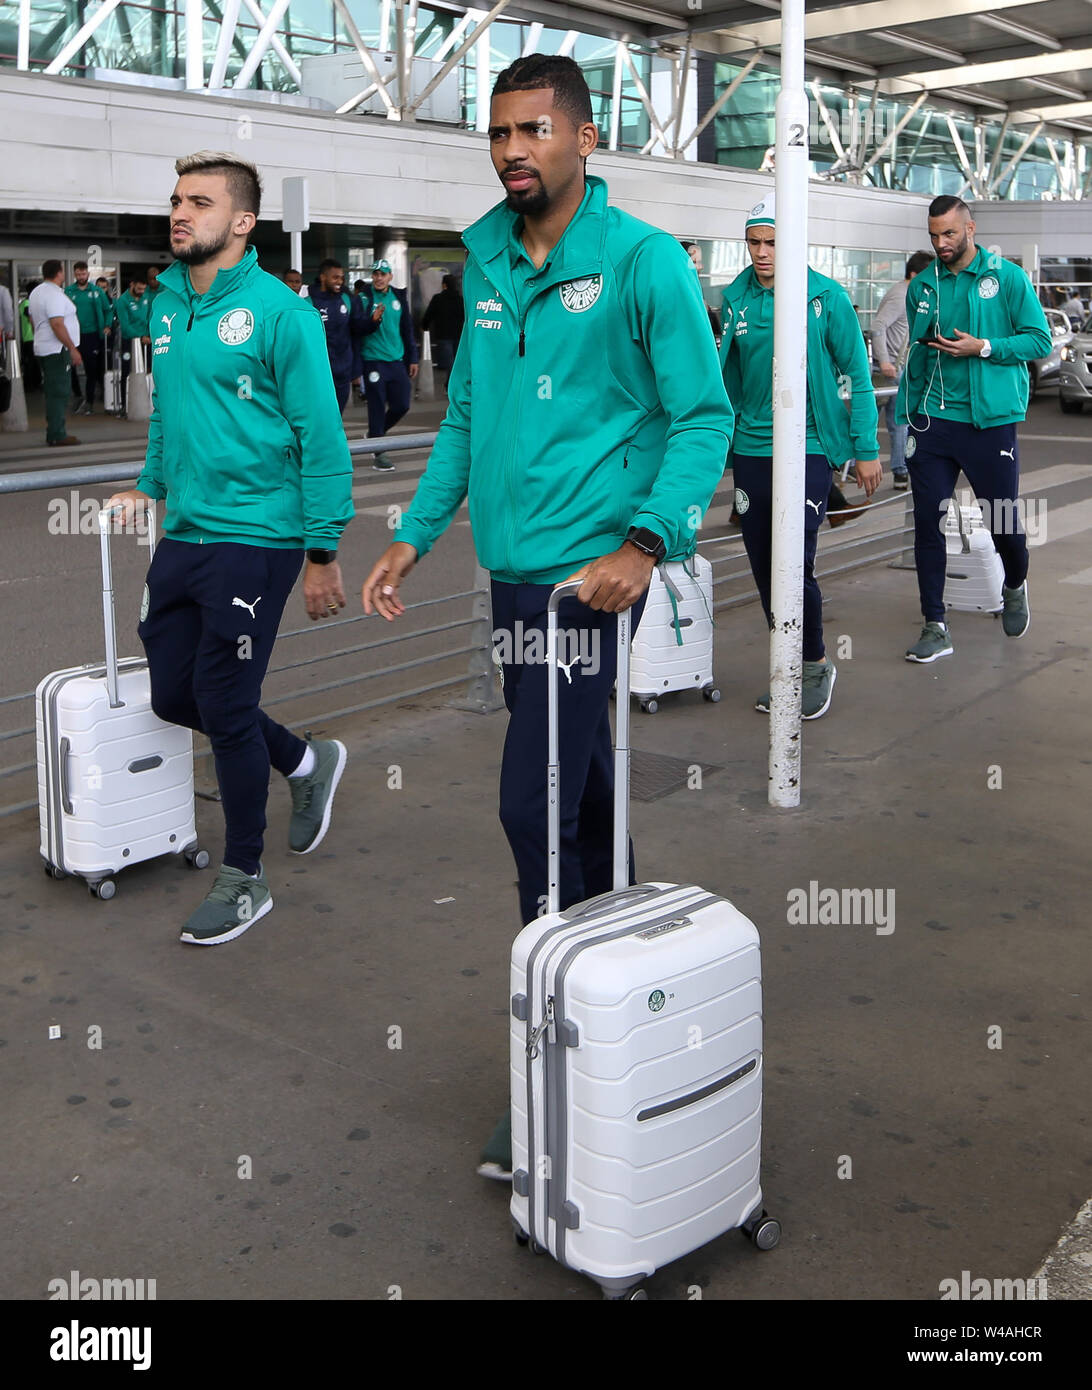 Buenos Aires, Argentina. 21st July, 2019. Matheus Fernandes, from SE Palmeiras, during landing, at Buenos Aires International Airport. Credit: Cesar Greco/FotoArena/Alamy Live News - Stock Image